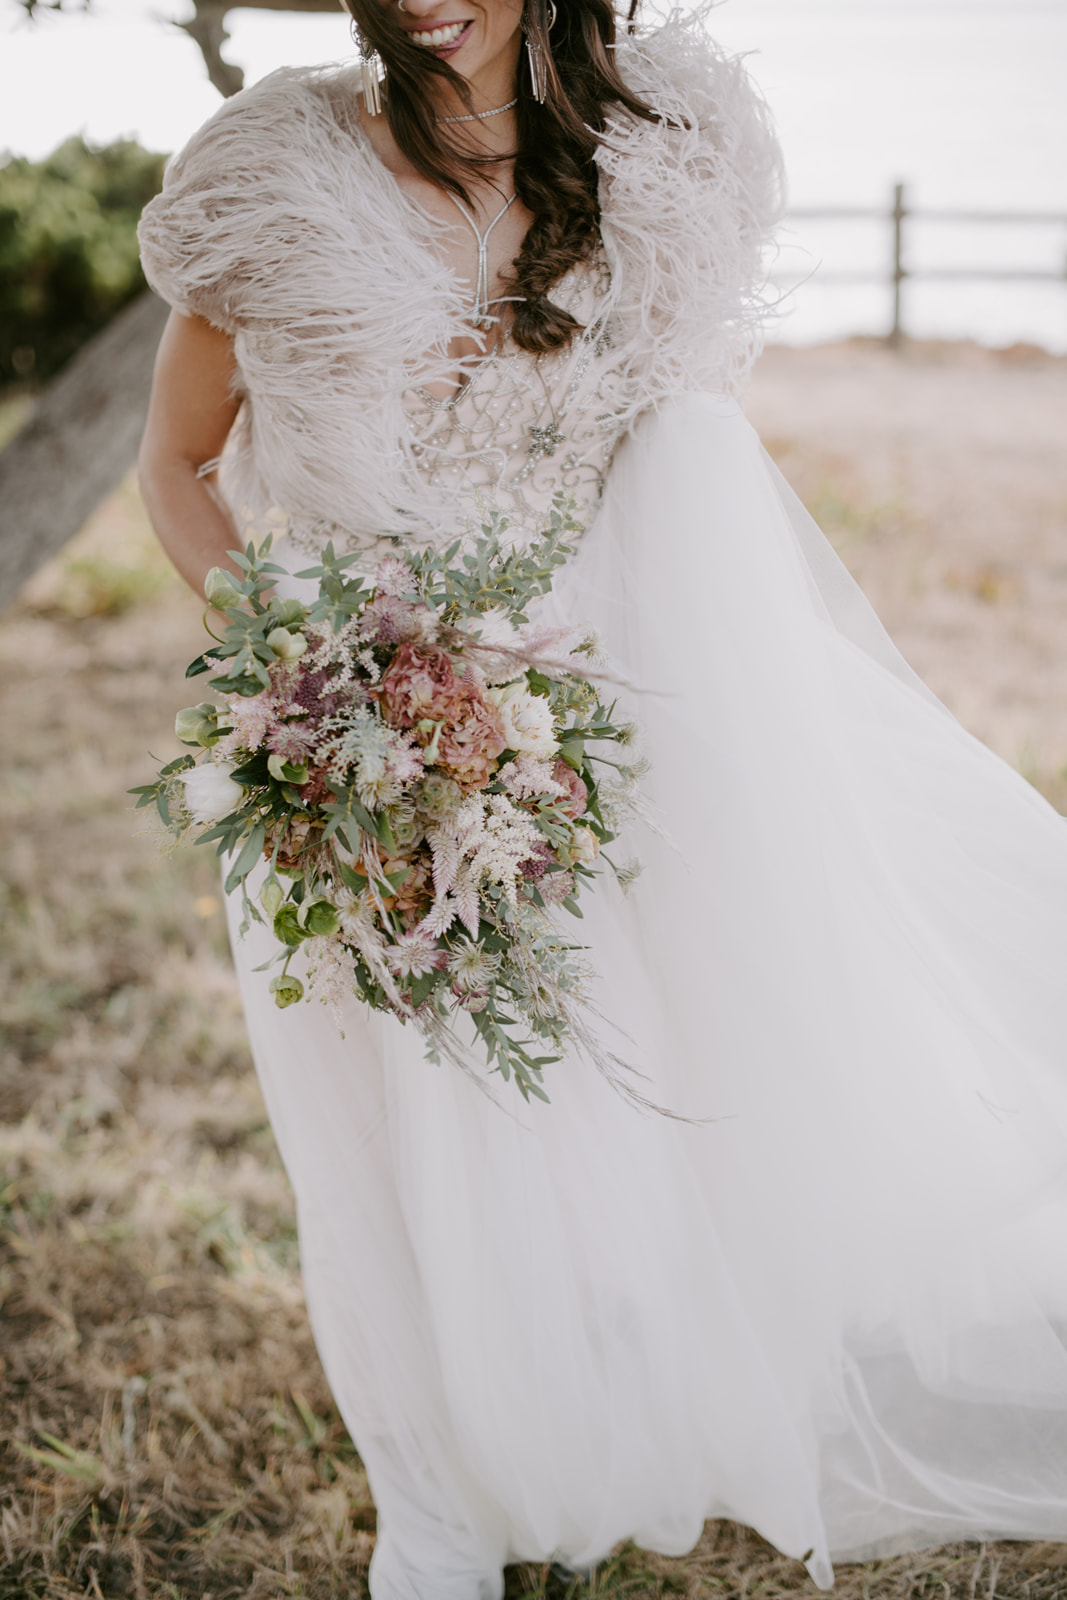 Modern romantic flowers by Venn Floral for the stylish bride photographed by Kristen Marie Parker at Heritage House Resort in Mendocino, California.